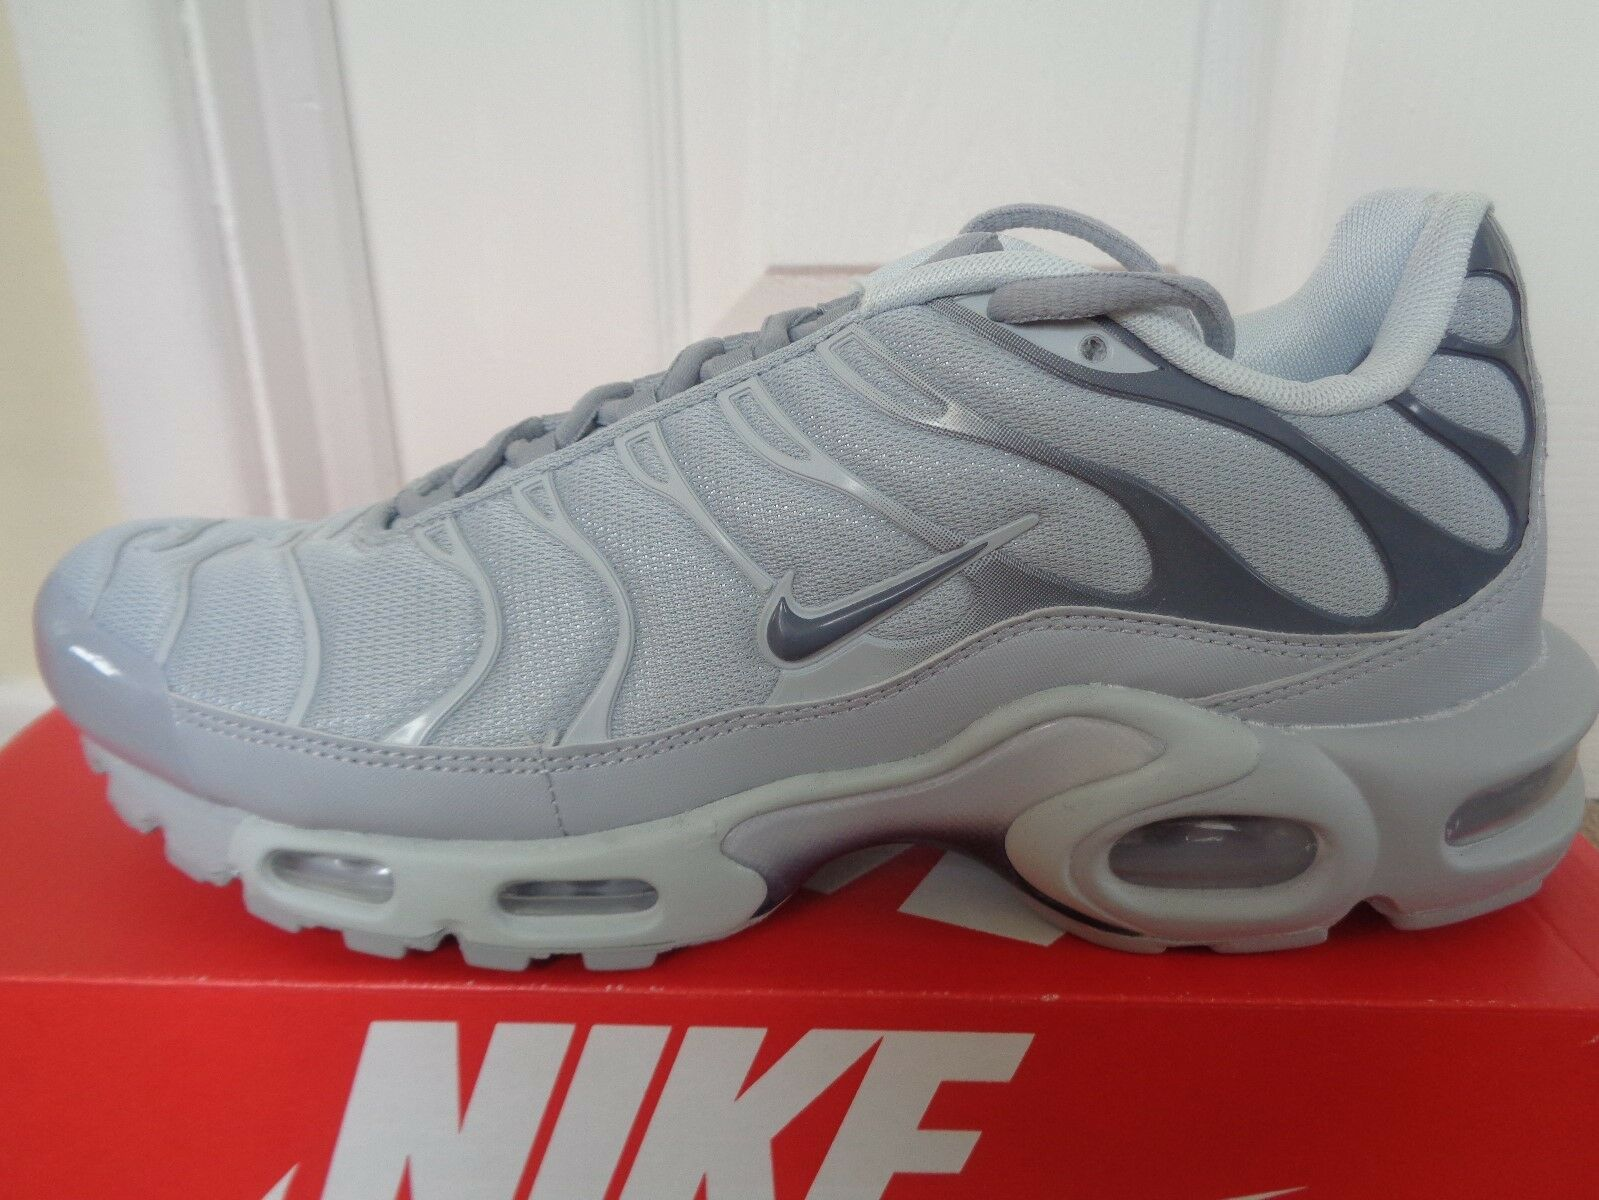 Nike Air max plus trainers sneakers shoes 852630 006 eu 40 us 7 NEW+BOX